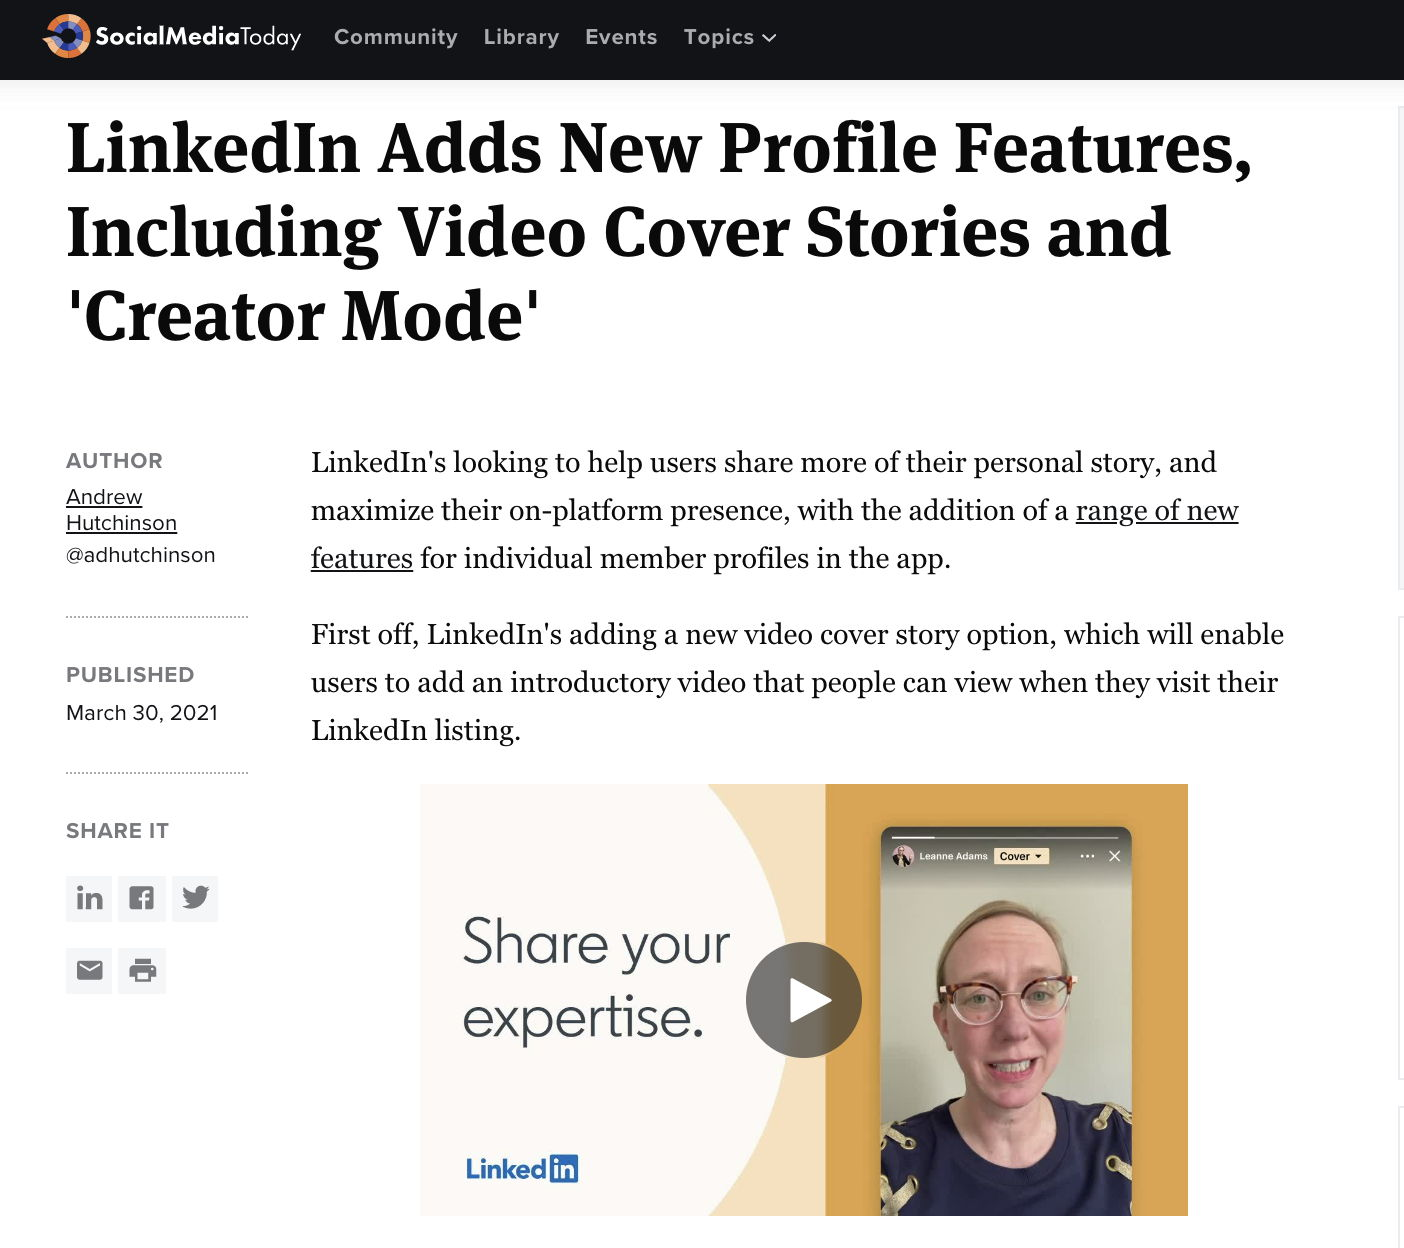 LinkedIn Adds New Profile Features, Including Video Cover Stories and 'Creator Mode'